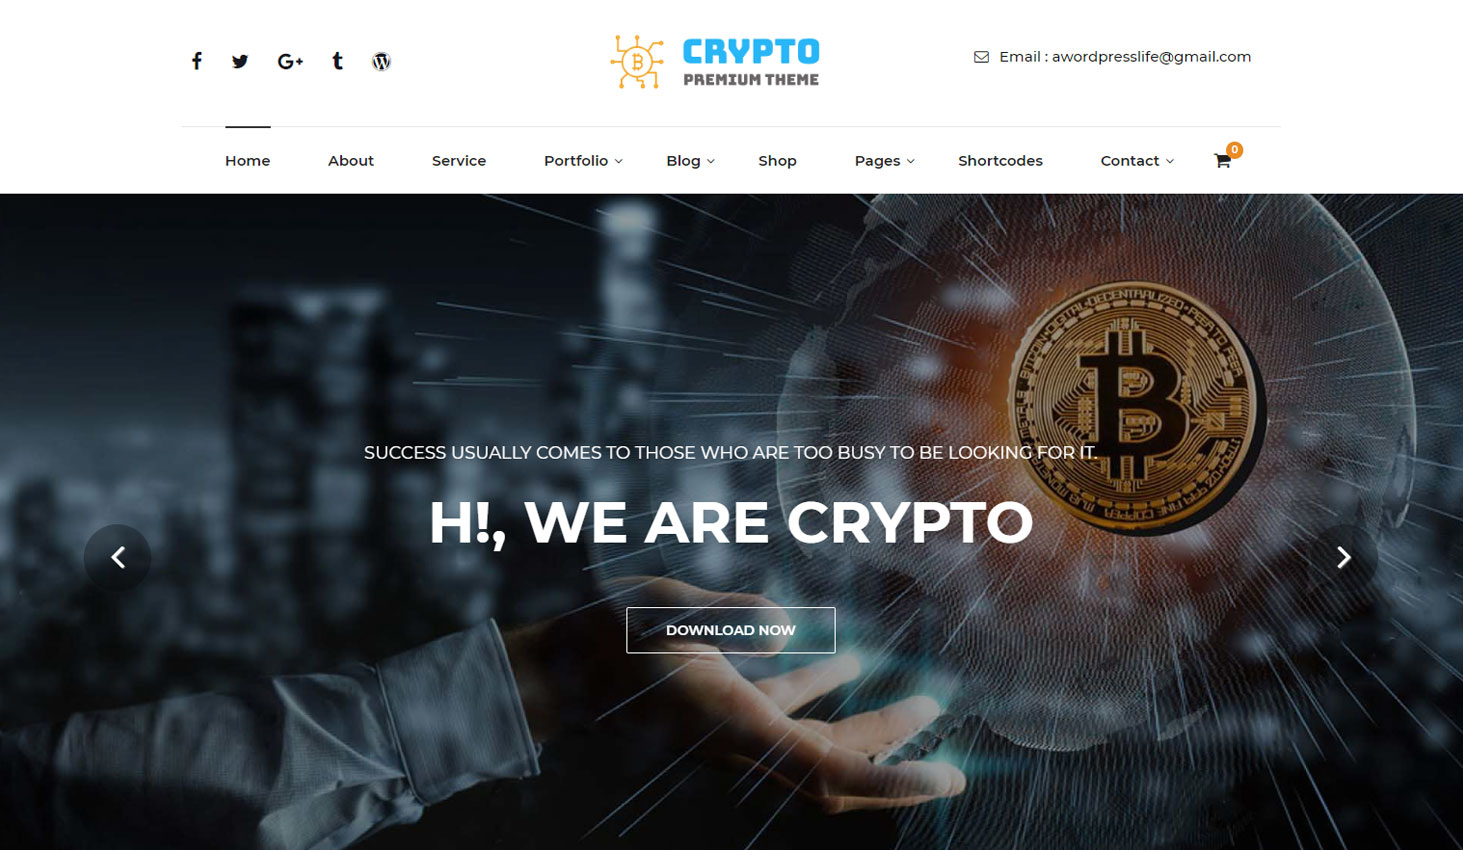 Crypto Premium WordPress Theme For Cryptocurrency Business and Blog Websites - A WP Life - Homepage Template